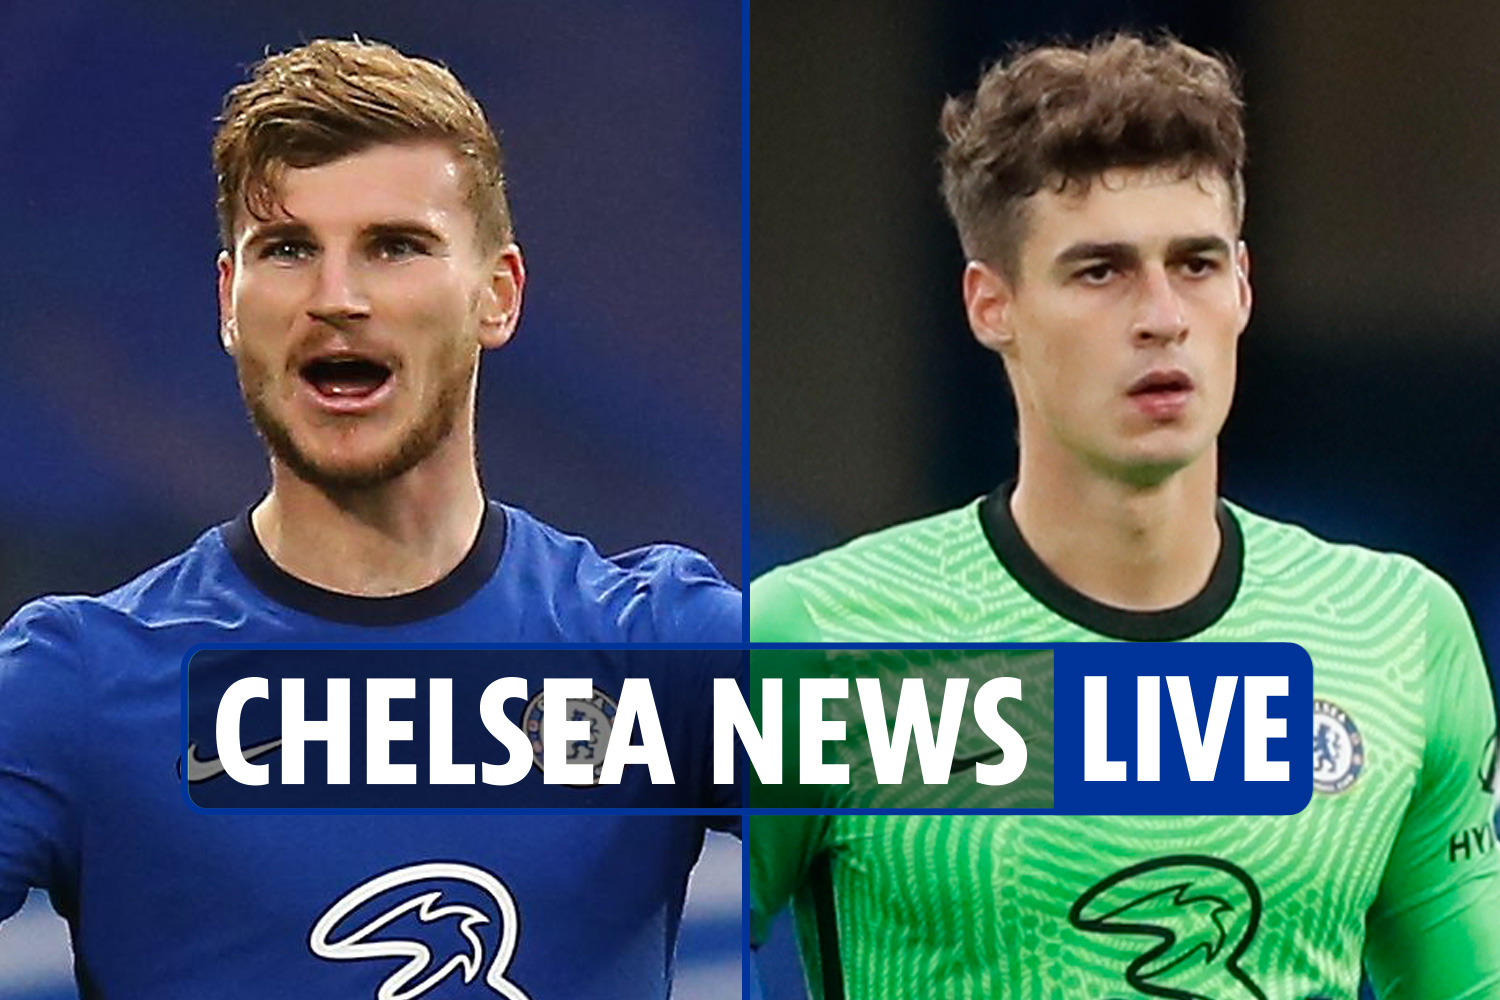 9am Chelsea news LIVE: Werner in the goals, Southampton late draw, defensive woes, Jorginho deal, Donnarumma linked